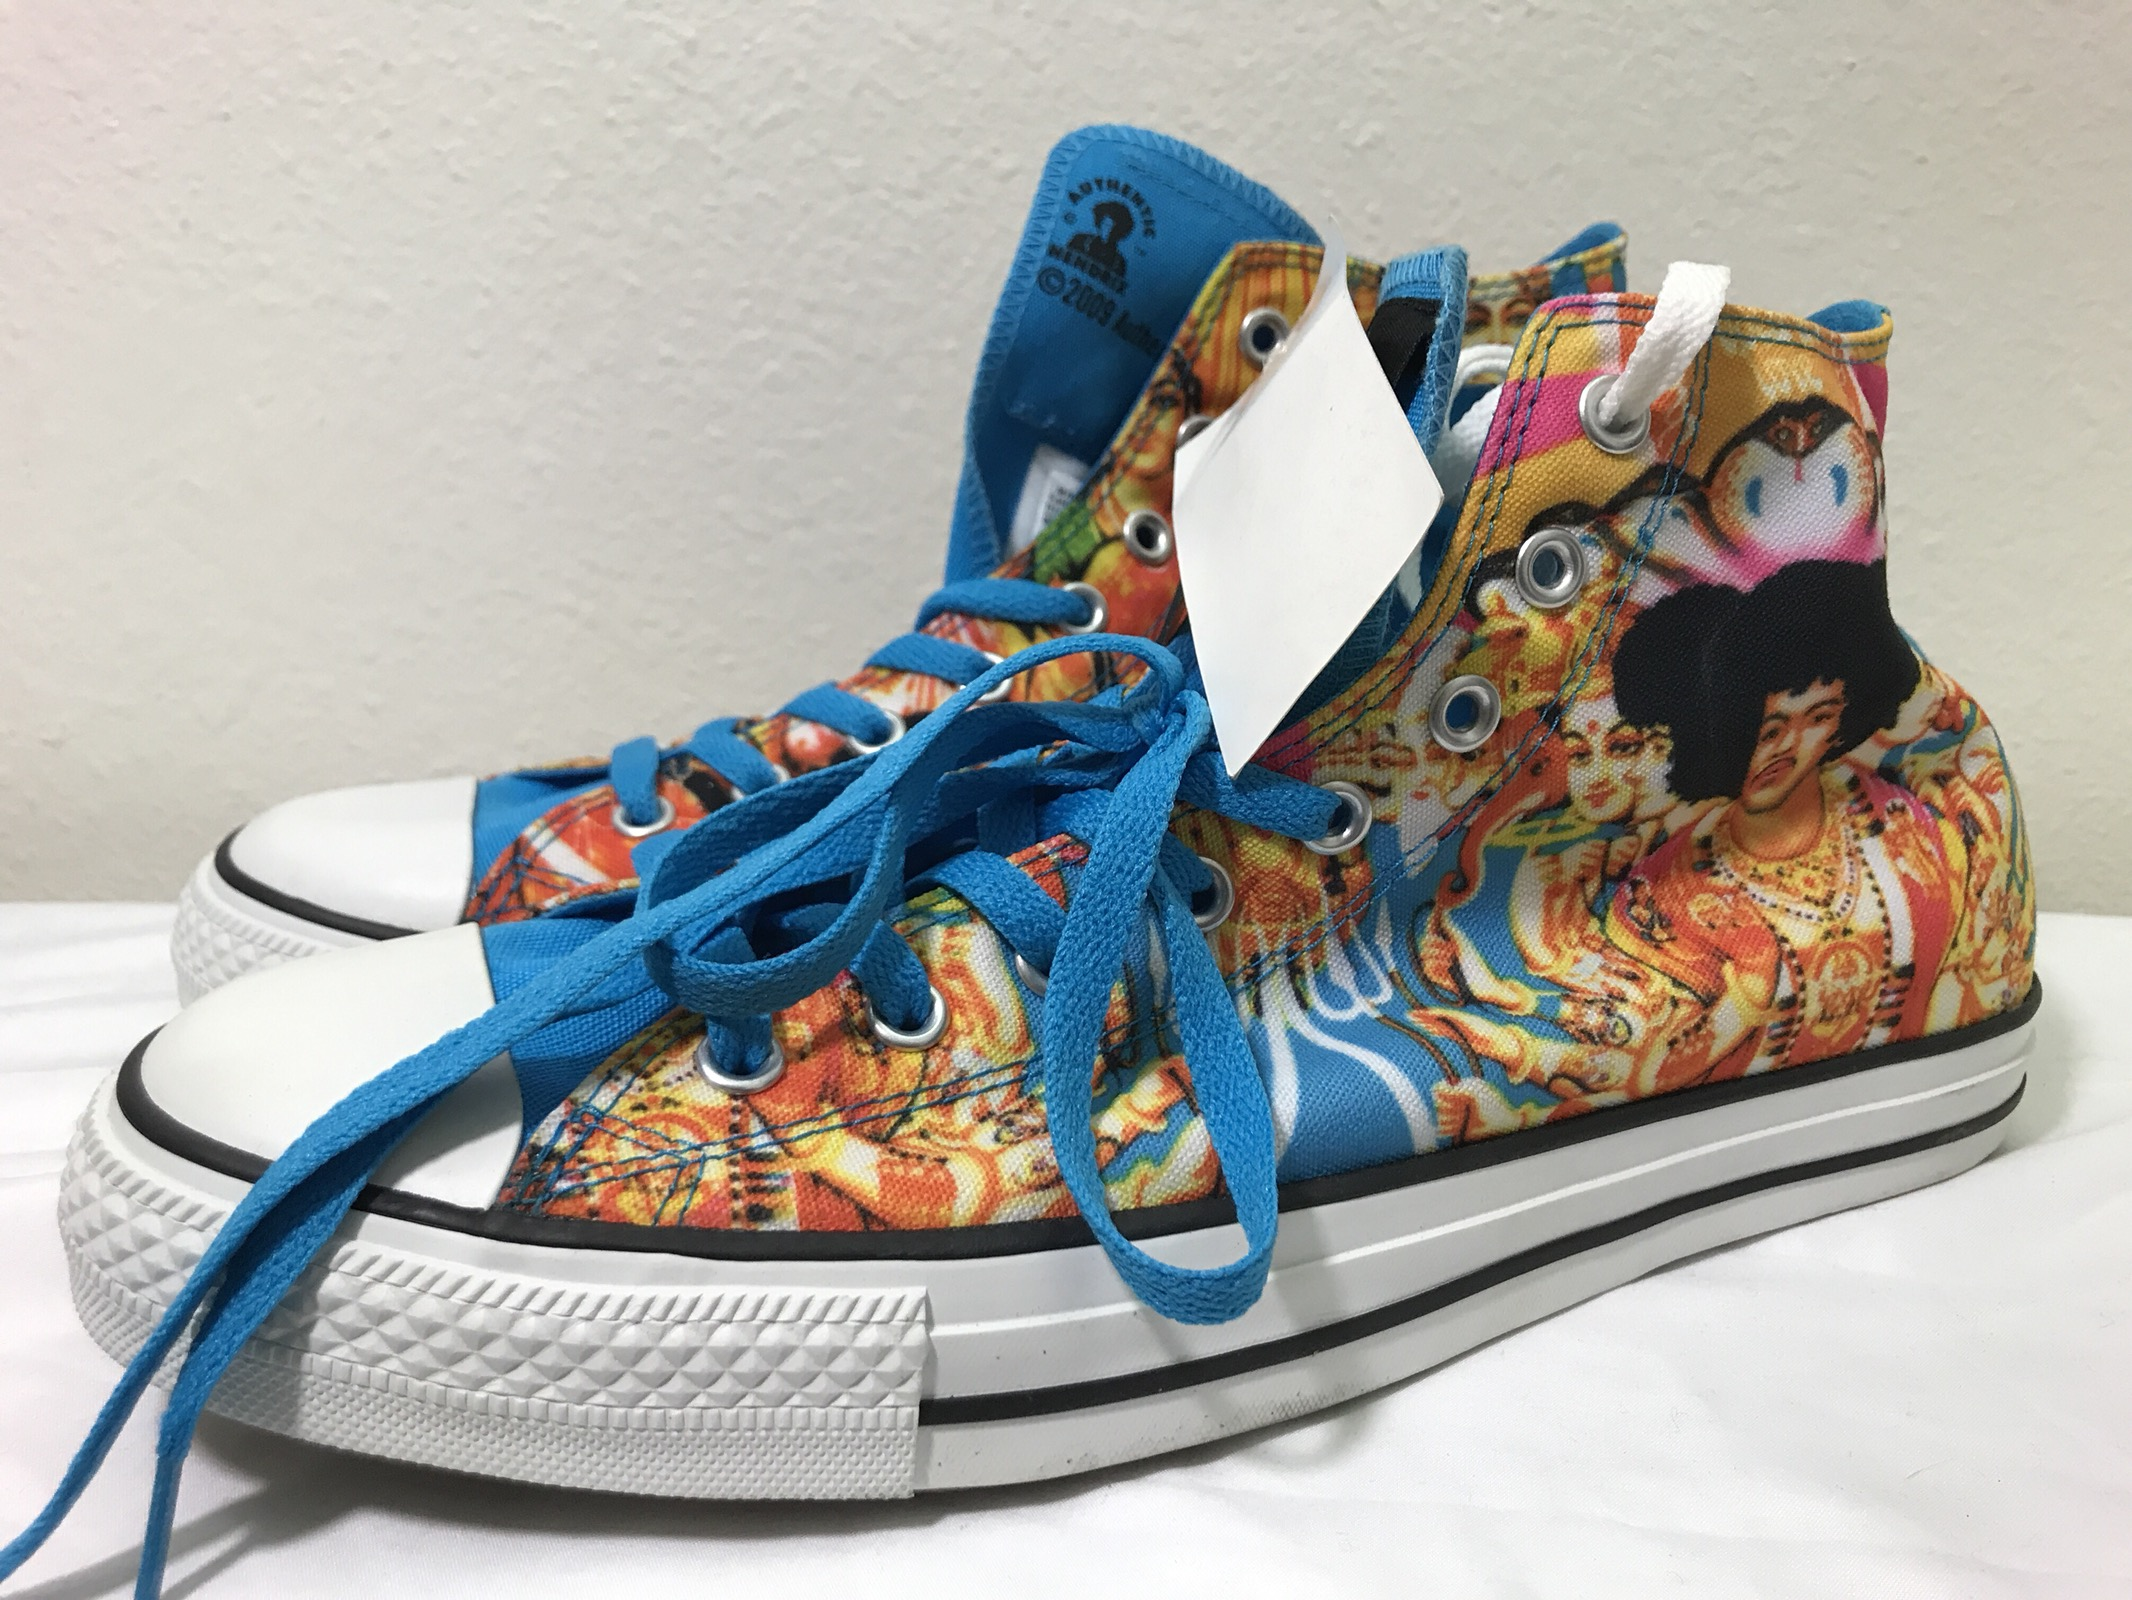 26c3cf80fd253e Converse Jimi Hendrix Converse All Star Chuck Taylor Hi Top Sneakers Size  12 - Hi-Top Sneakers for Sale - Grailed